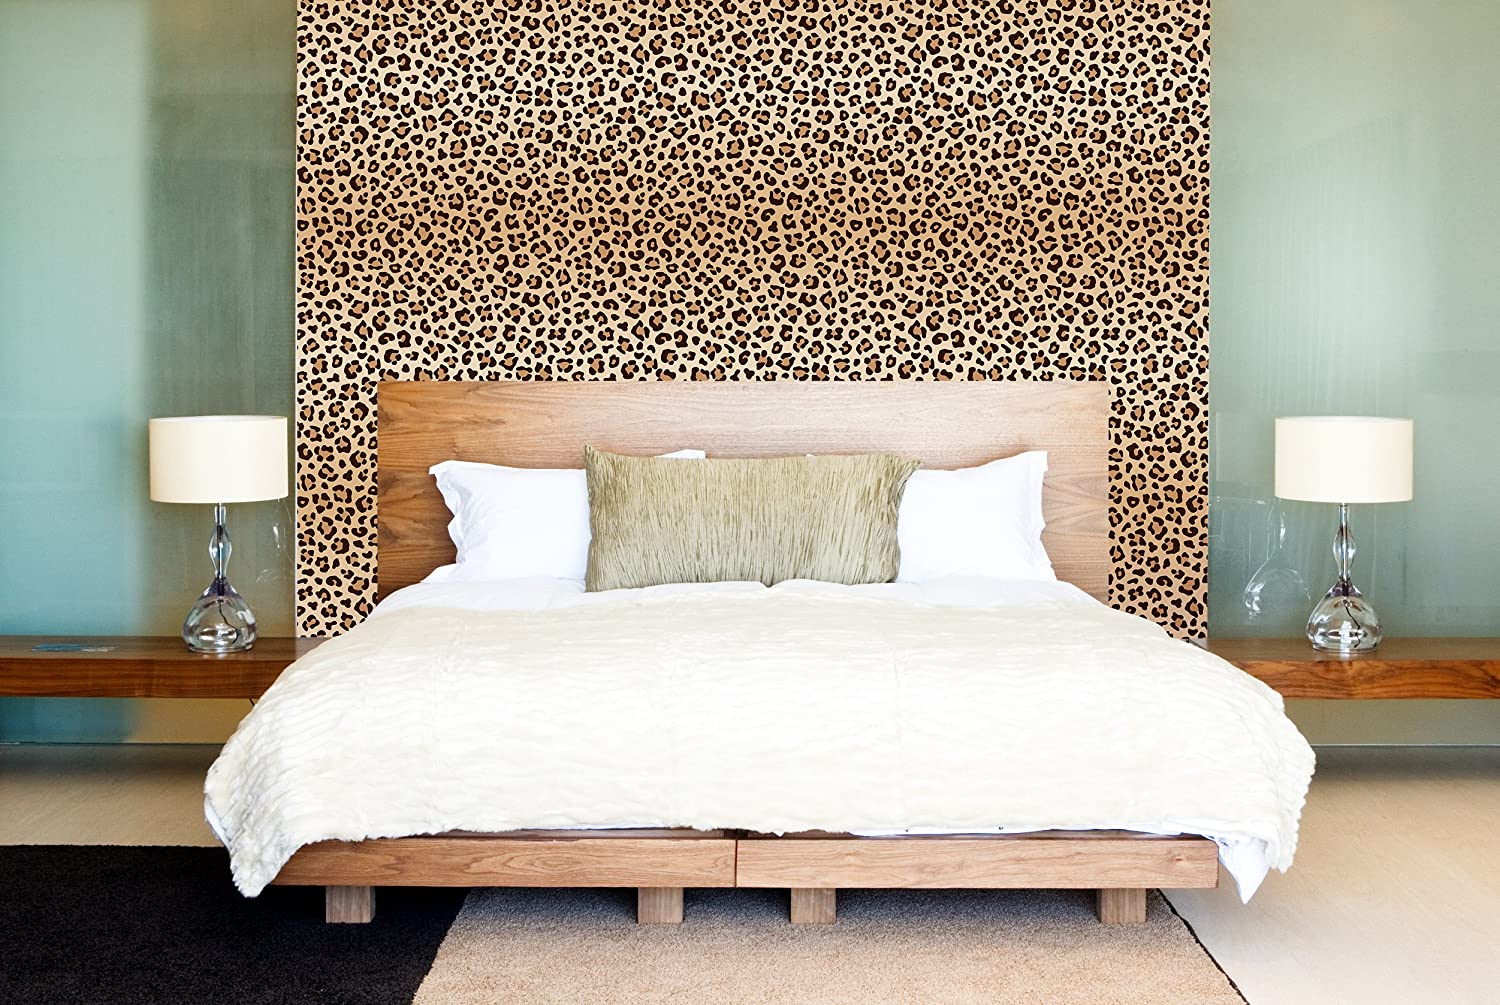 Amazon Com Leopard Spots Removable Wallpaper Animal Pattern Self Adhesive Wall Paper Vinyl For Walls Peel And Stick Application Cc151 Handmade